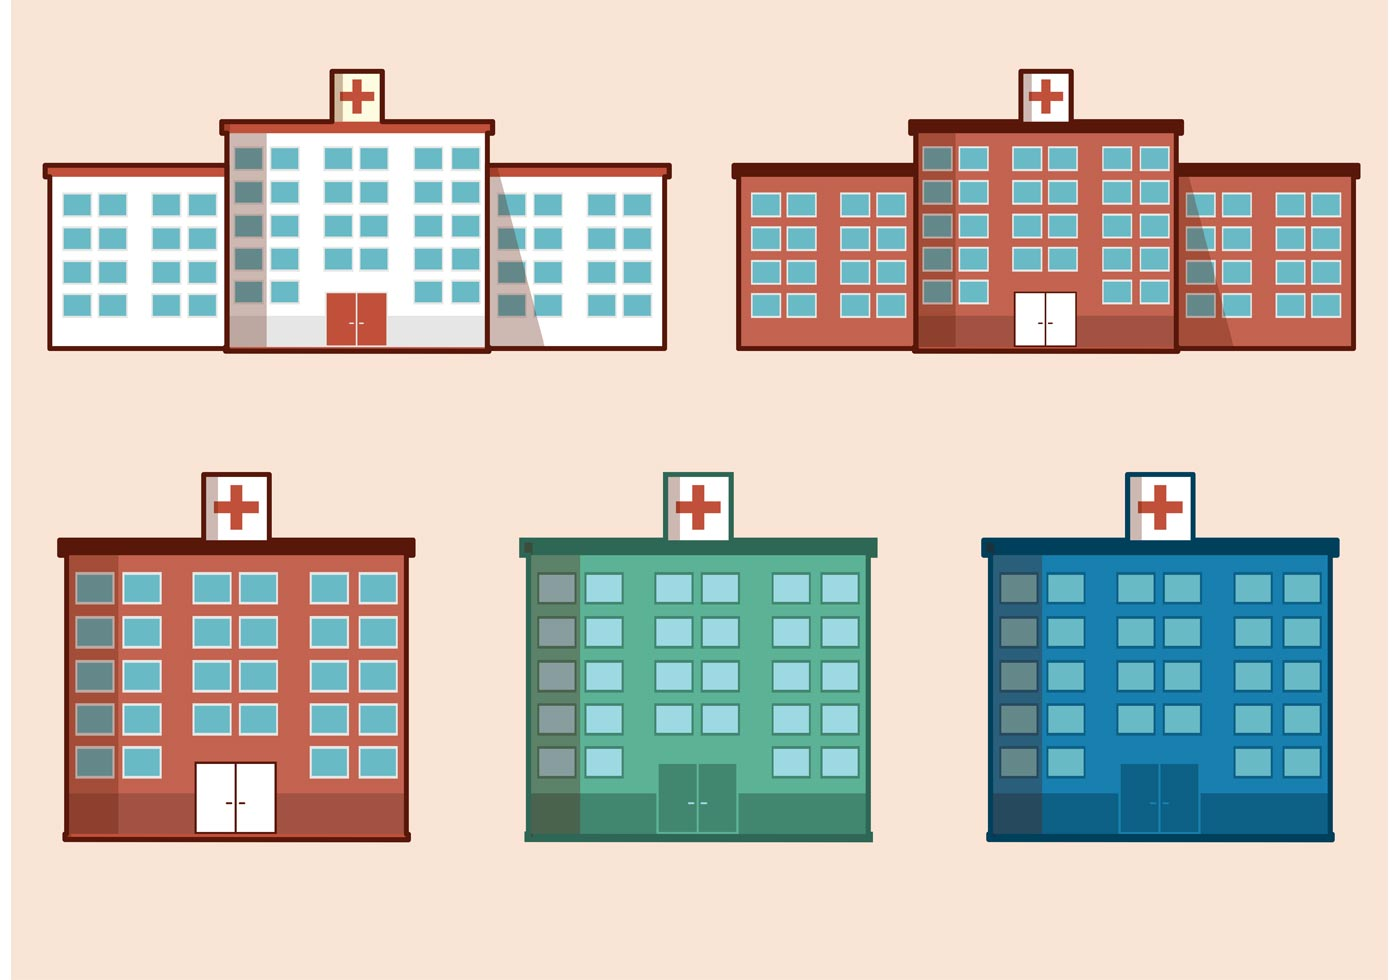 Free vector hospital building download free vector art for House builder online free